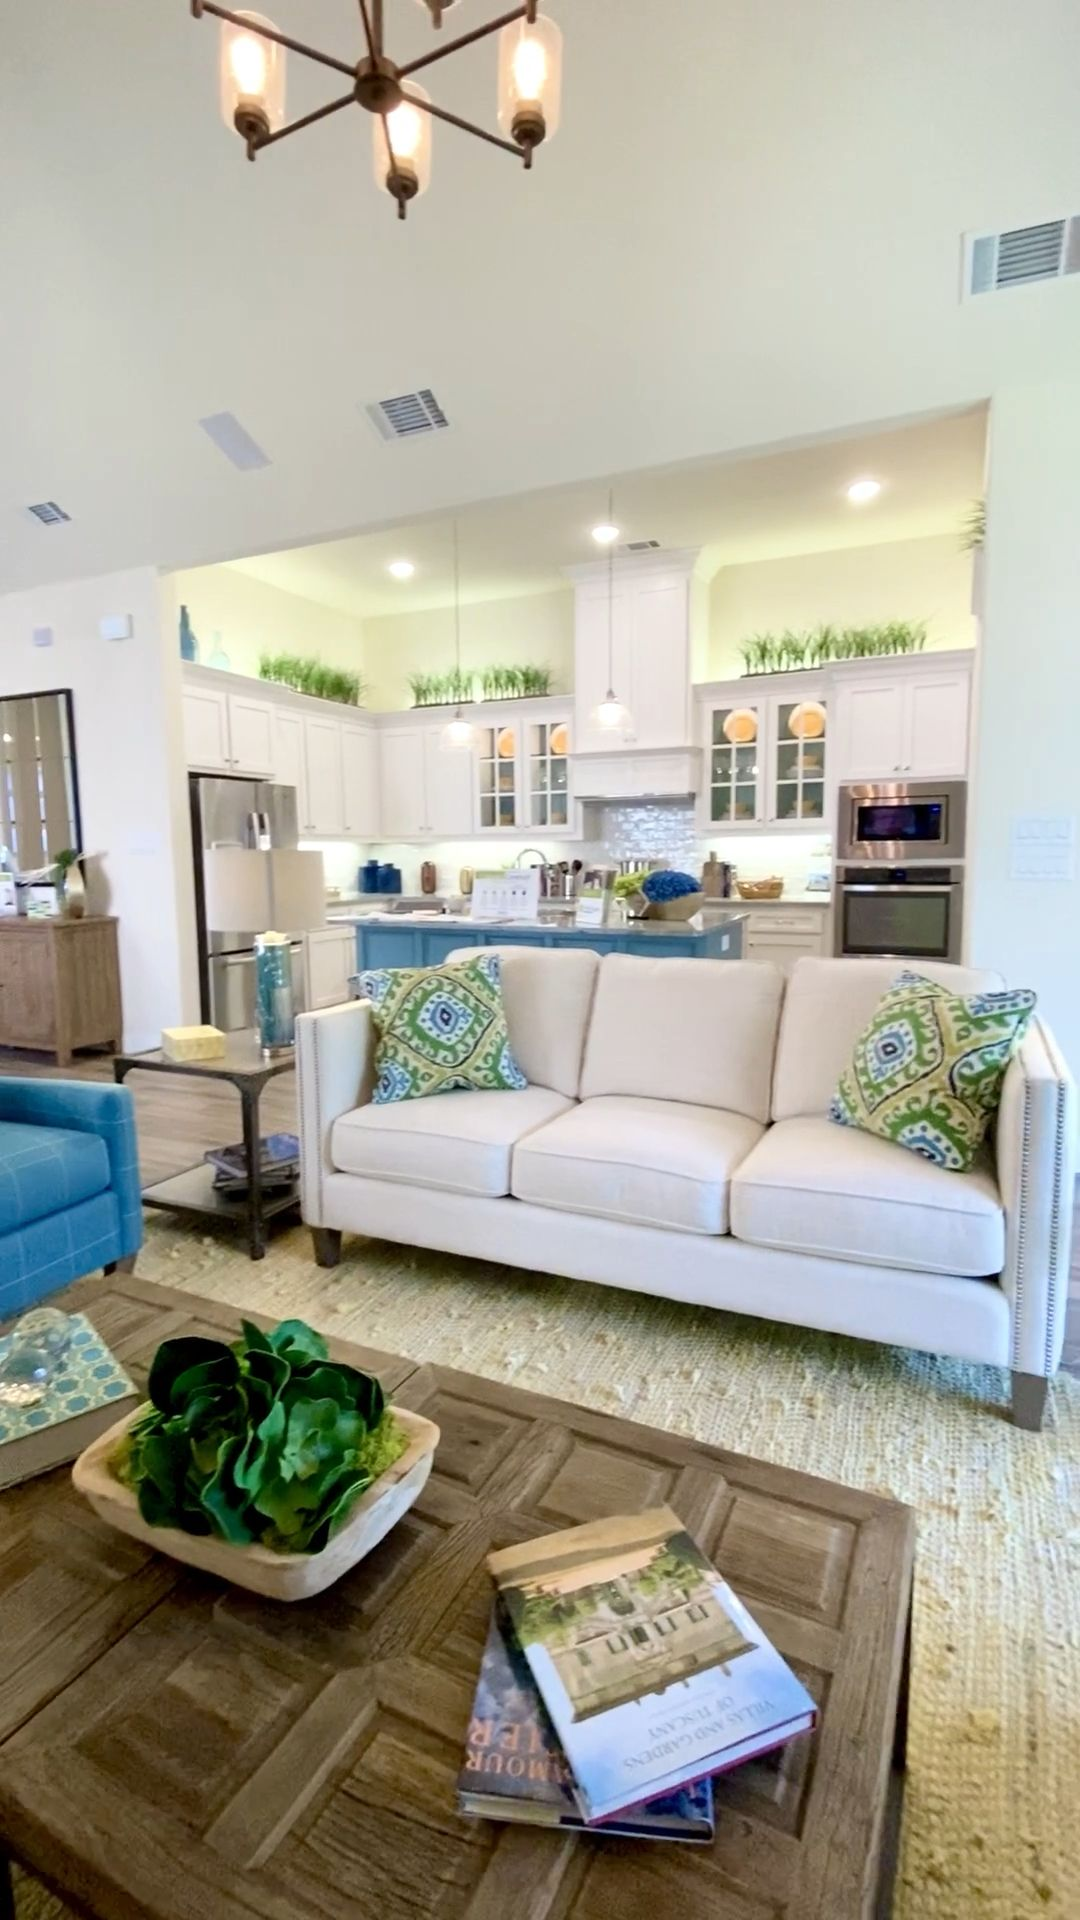 White kitchen cabinets open to the dining and living room with blue and green decor.  Click to see more decorating ideas and model home photos.... Learn how to decorate your own home... THE DECORATING COACH  #decoratingideas #kitchencabinets #livingroomdesigns